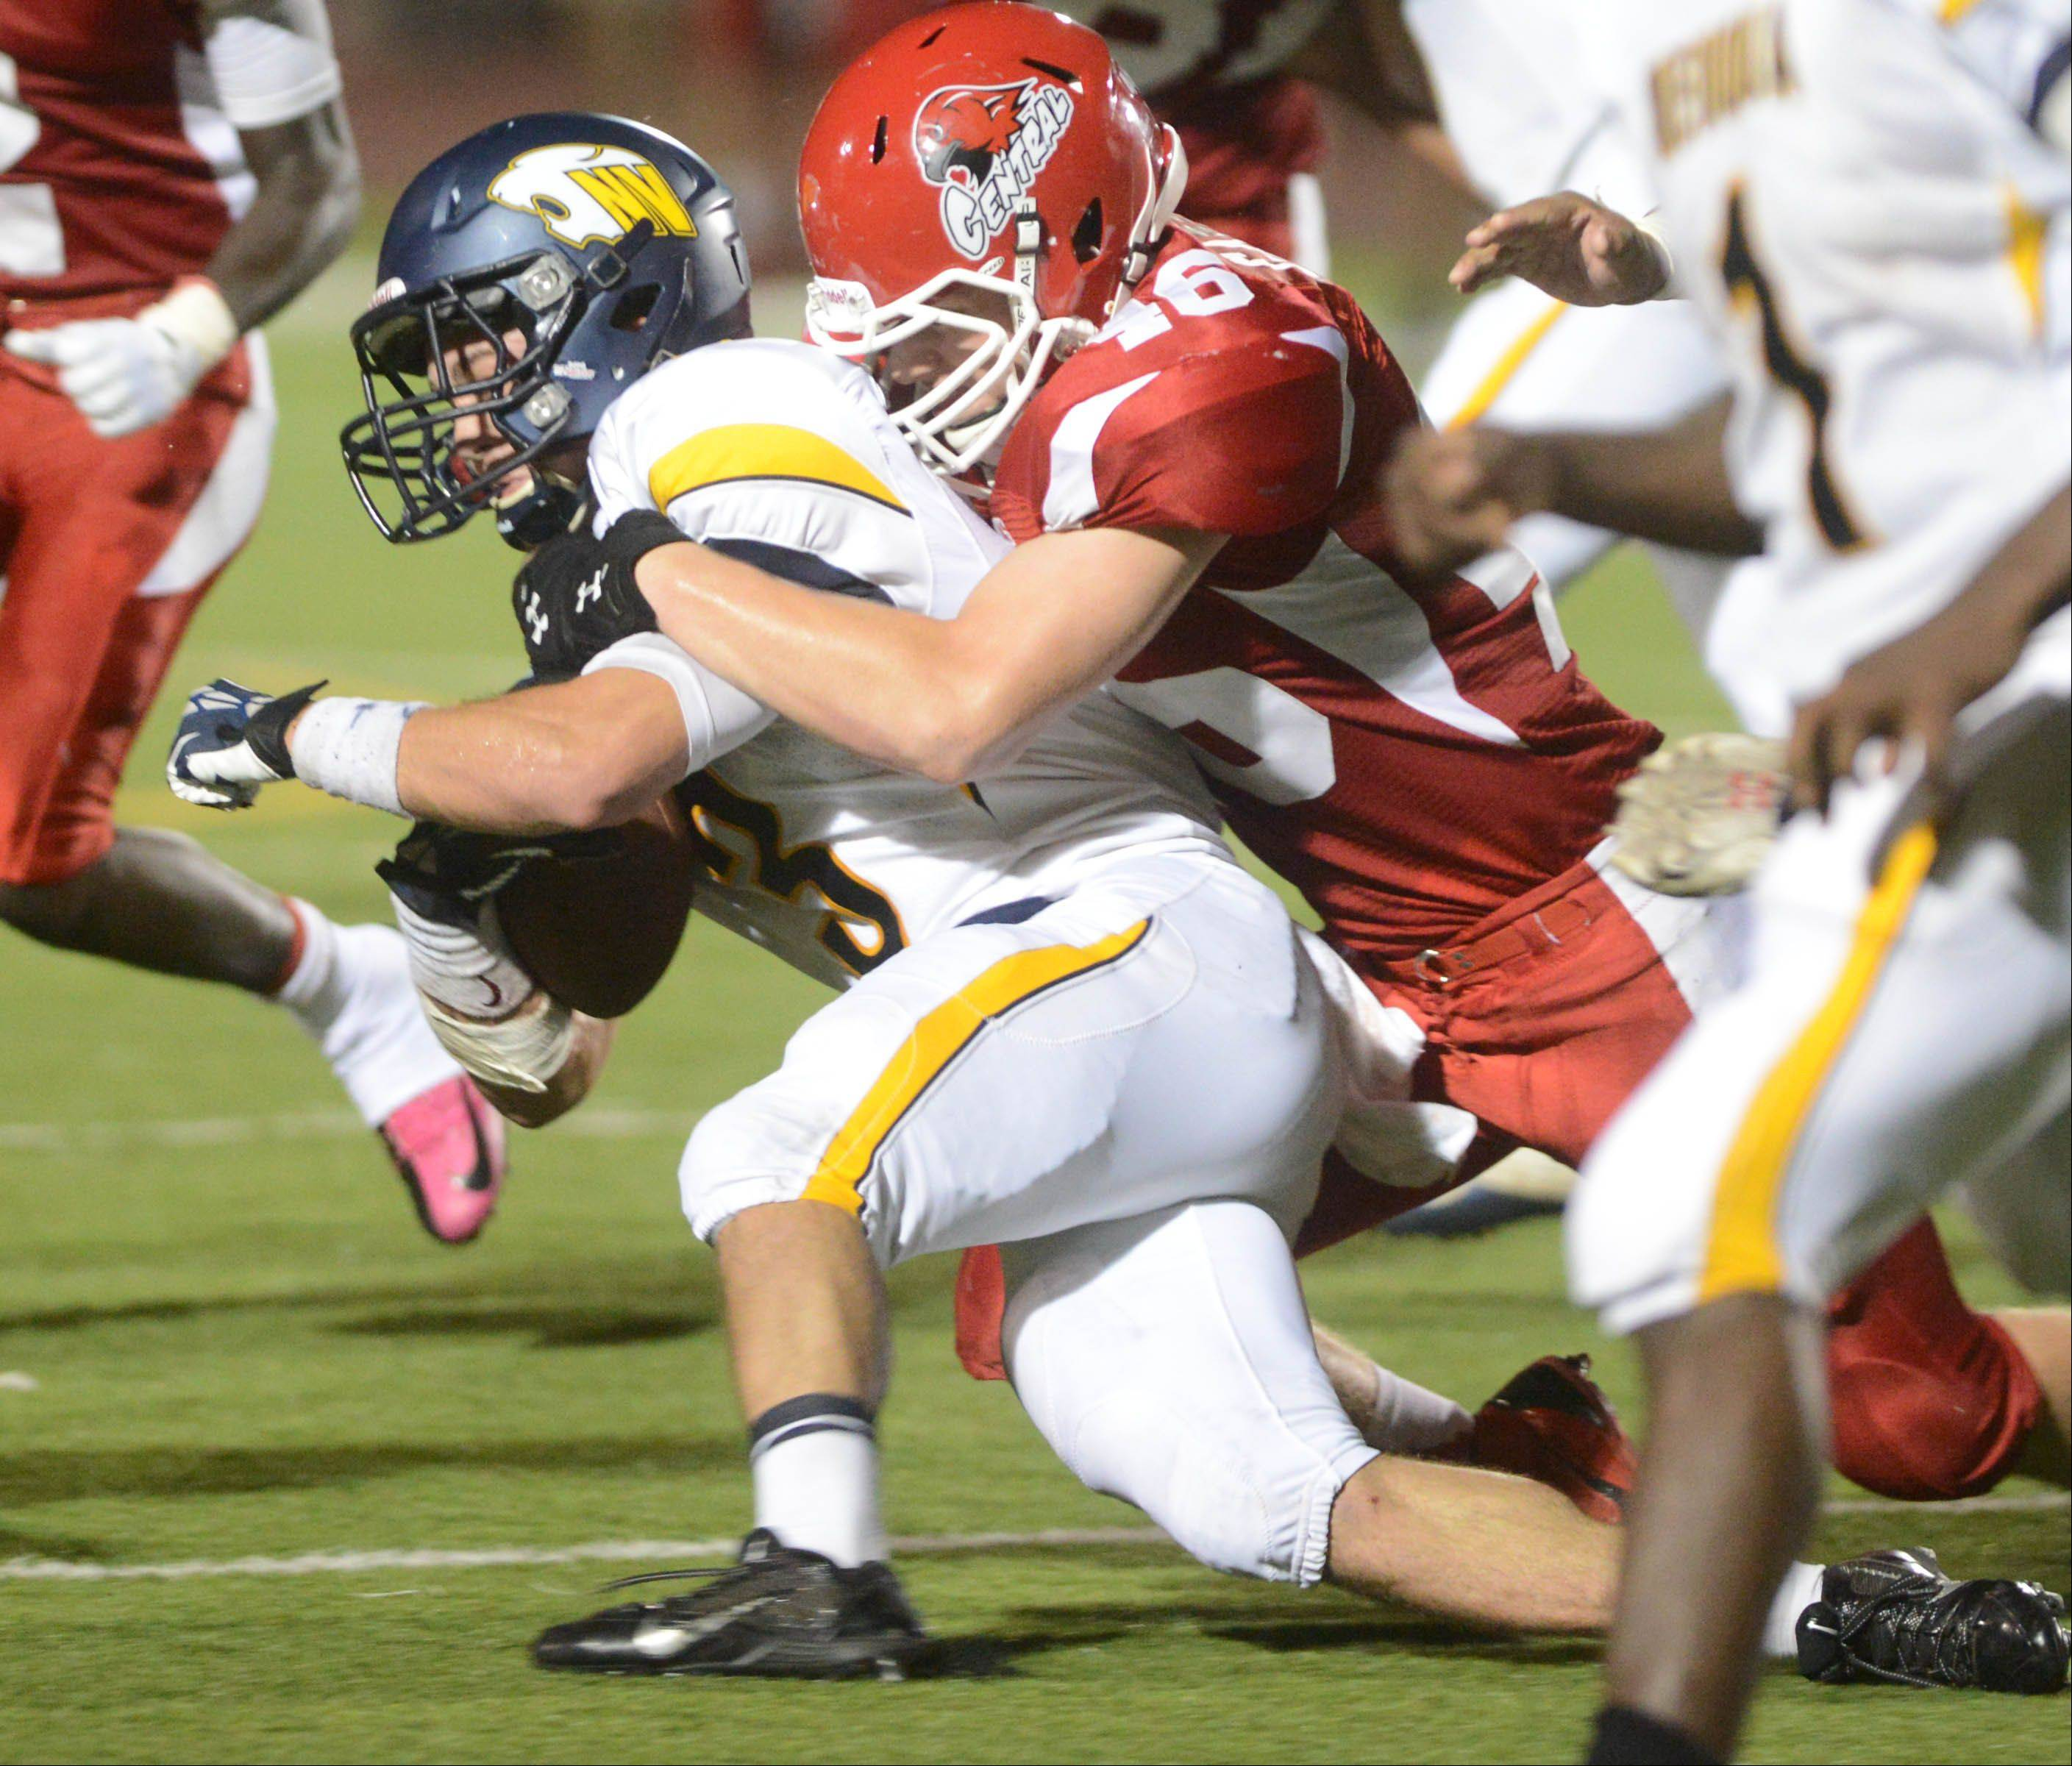 Mikey Dudek, left, of Neuqua Valley is pulled down by Billy Gammon of Naperville Central earlier this season.